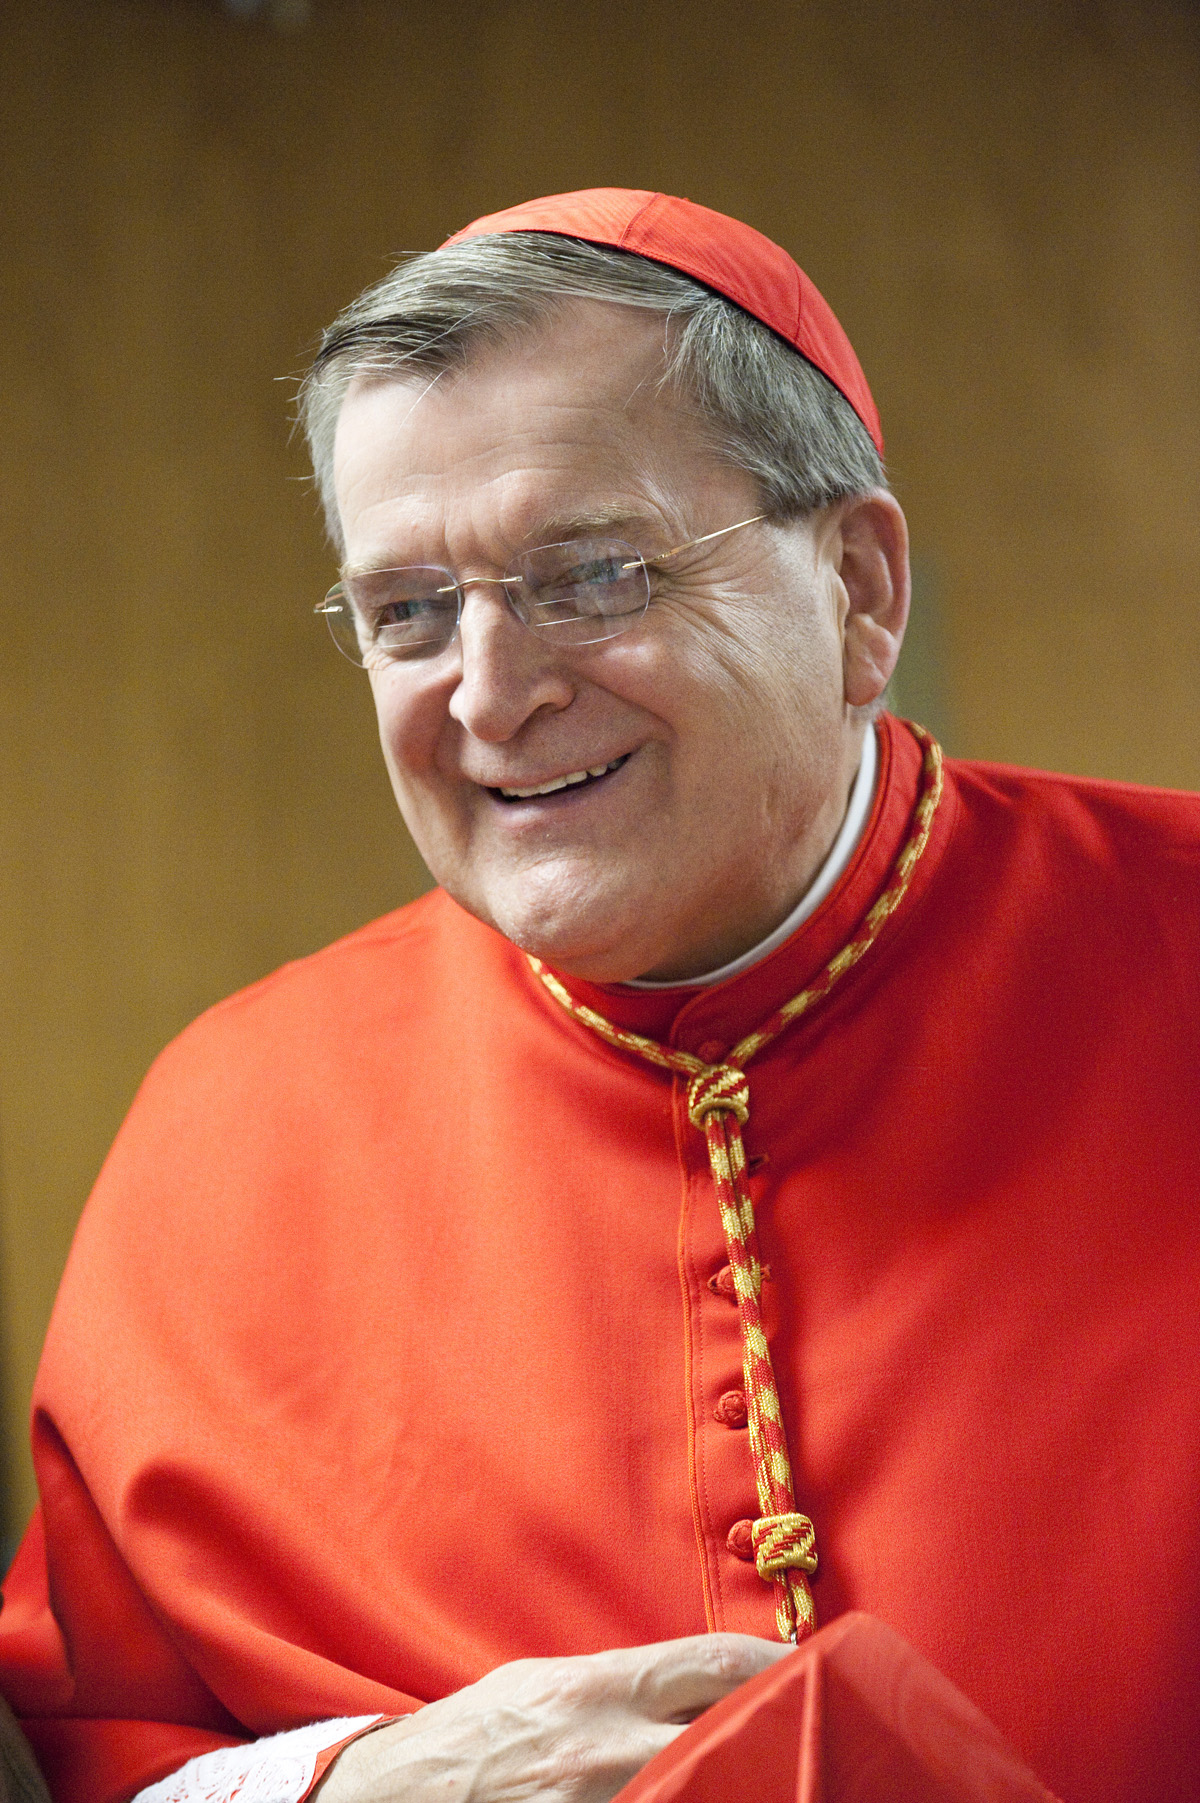 LISA JOHNSTON | lisa@aeternus.com  lisajohnston@archstl.org  His Eminence Raymond Cardinal Leo Burke | Prefect of the Apostolic Signatura | Archbishop Emeritus of St. Louis in front of the shrine to the Sacred Heart of Jesus in the Cathedral Basilica of S